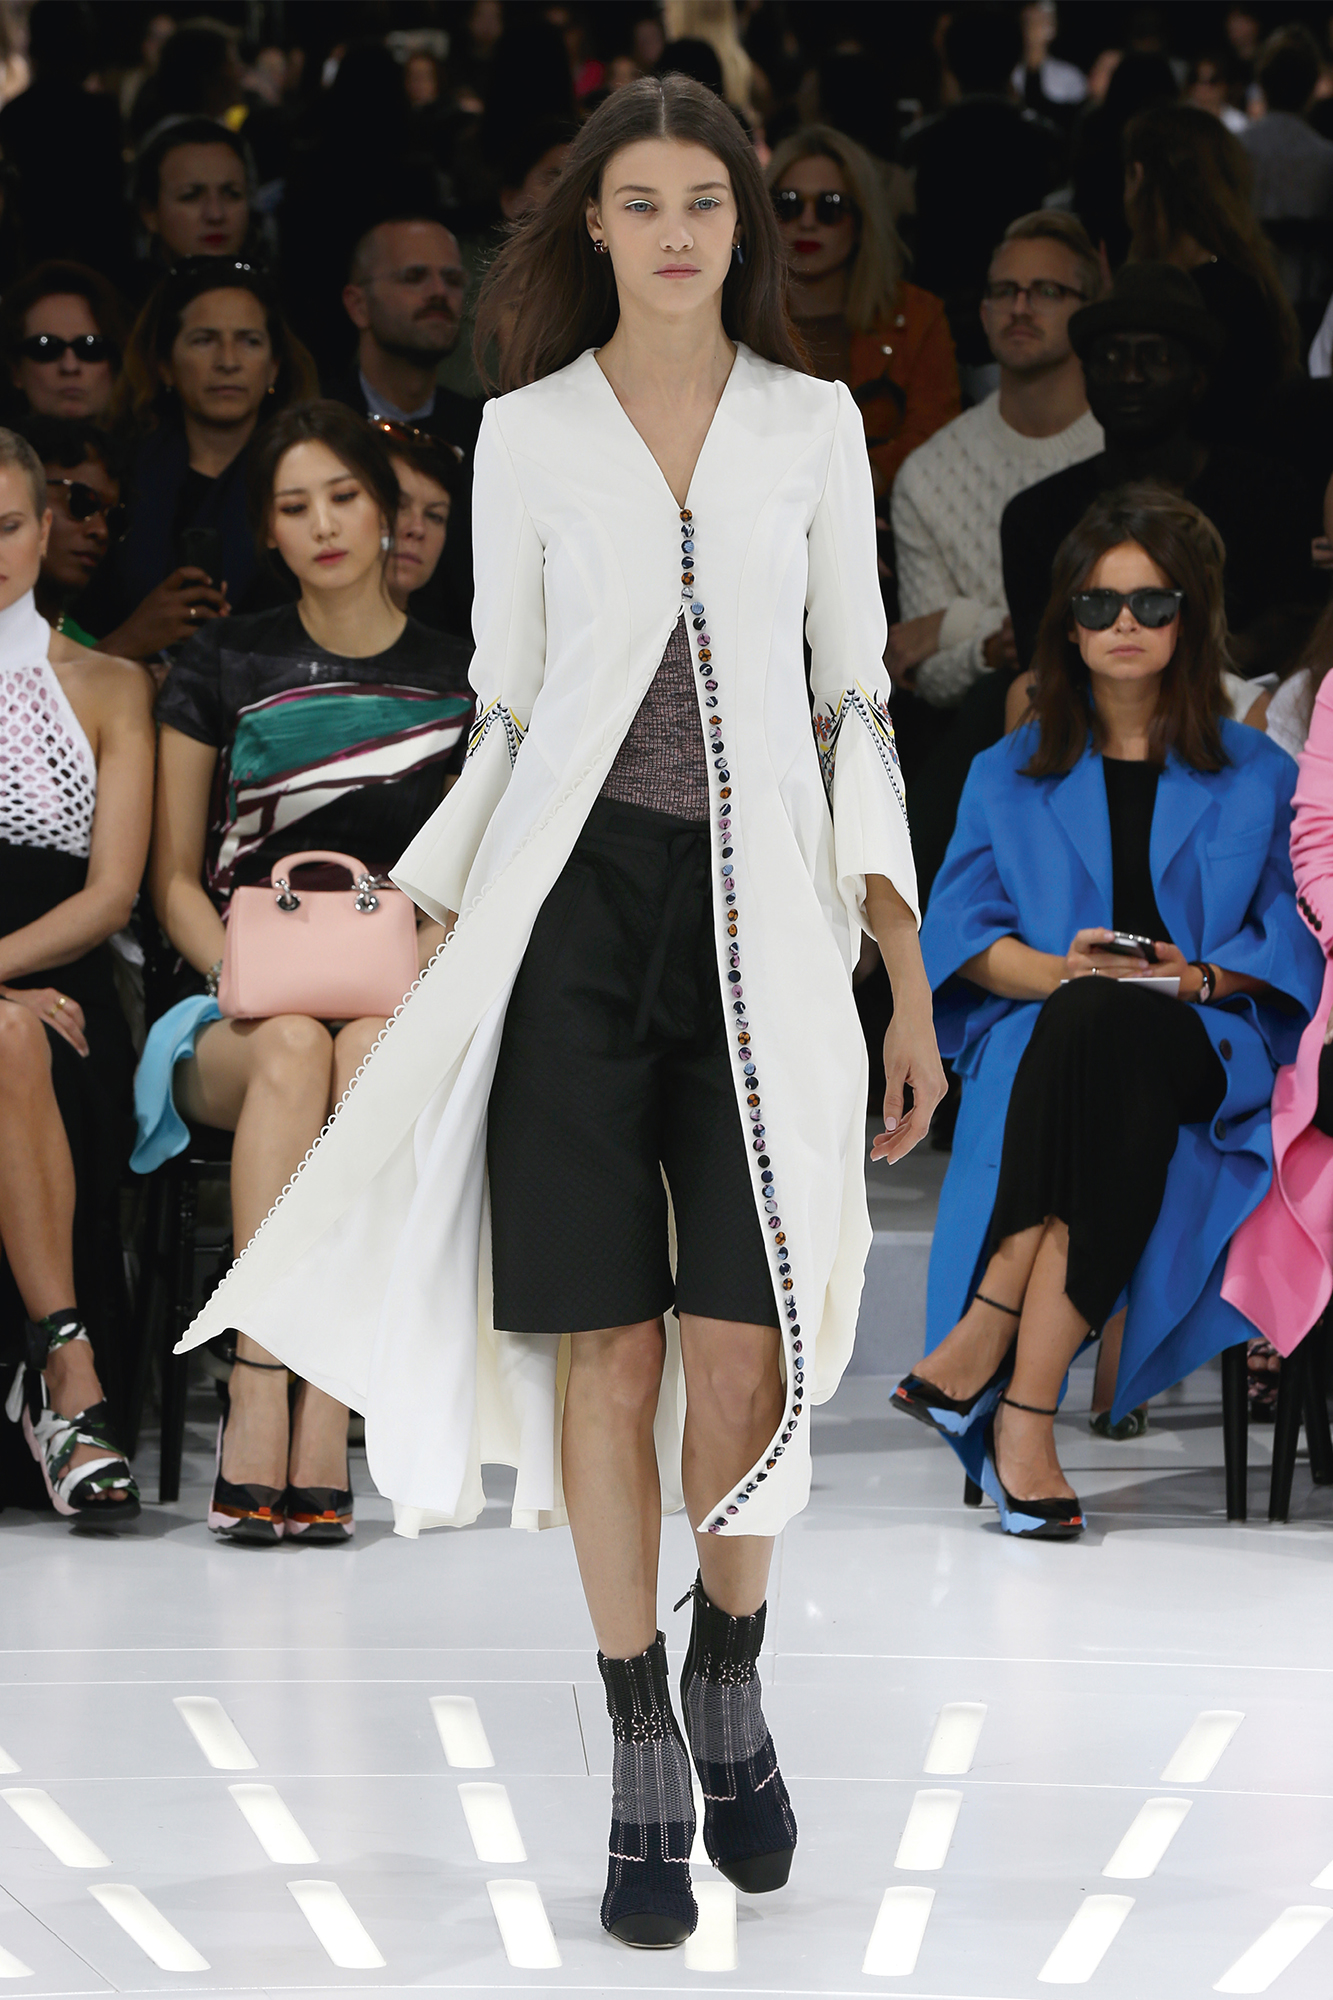 New Western Fashion Christian Dior Ready To Wear Dresses Spring Summer Collection 2015 (2)